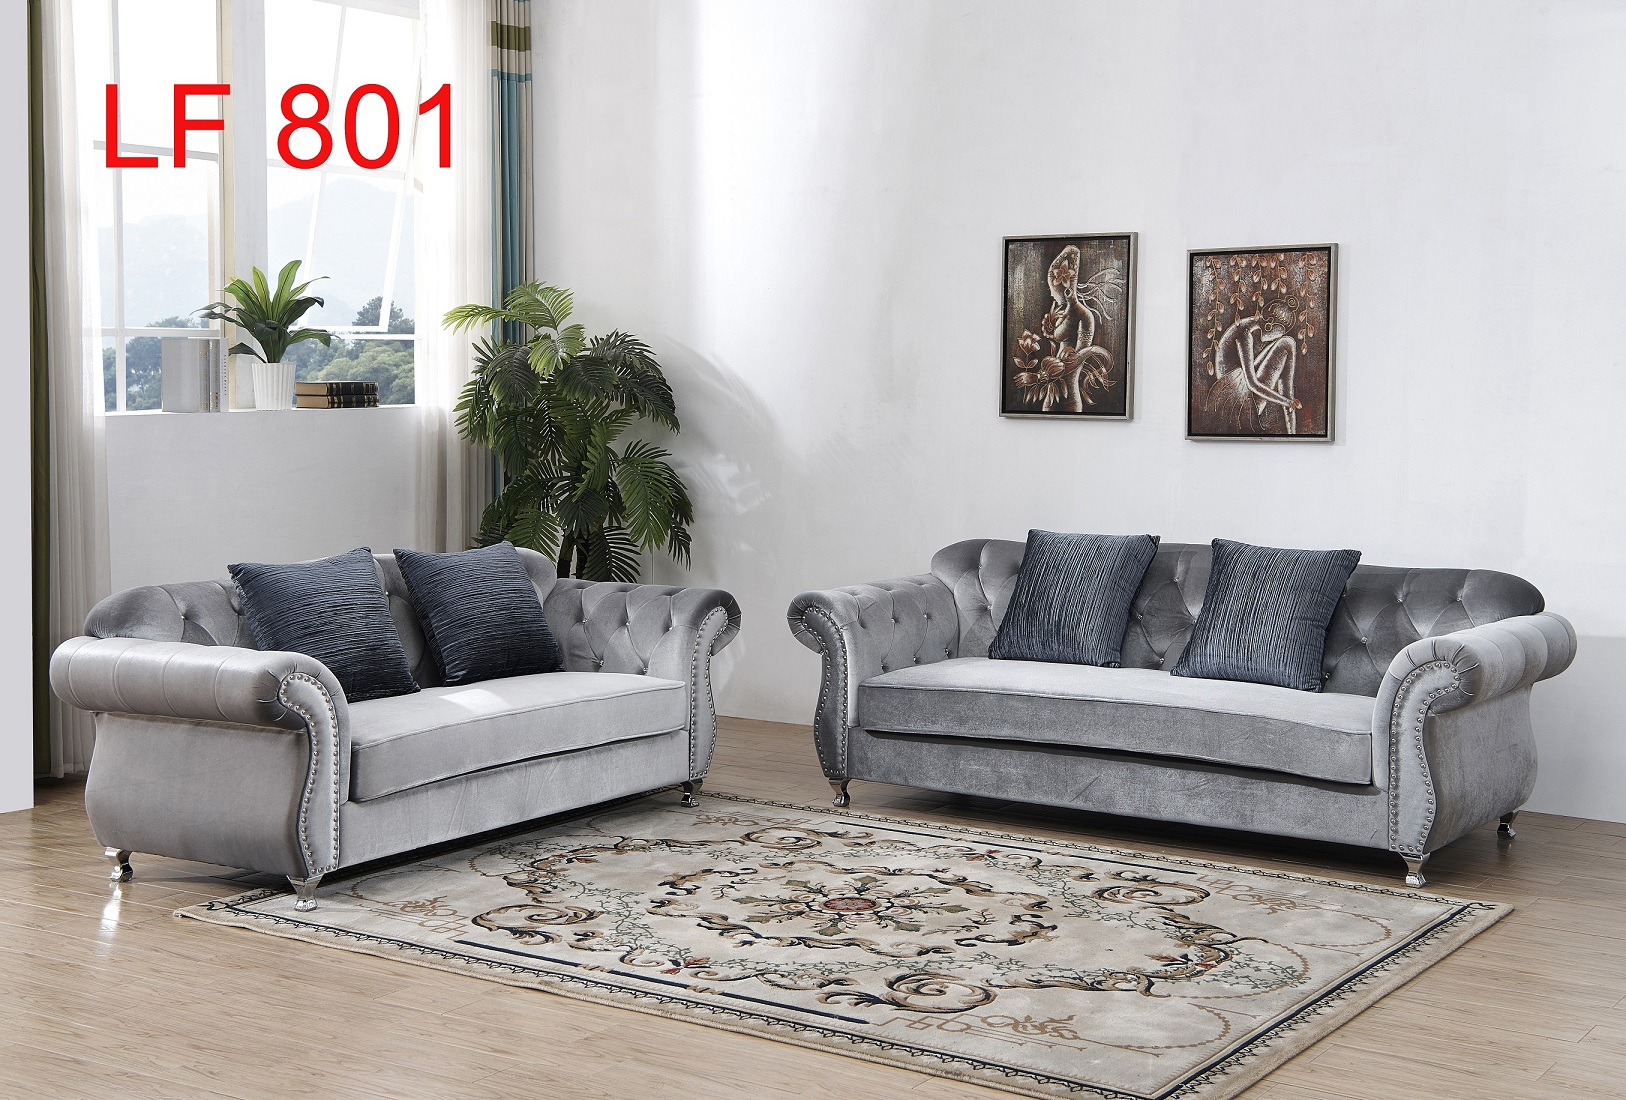 Sofa Set Price New Factory Price Home Furniture Luxury Fabric New Model Sofa Sets Pictures Beds Buy New Model Sofa Sets Pictures Sofa Fabric Sofa Beds Product On